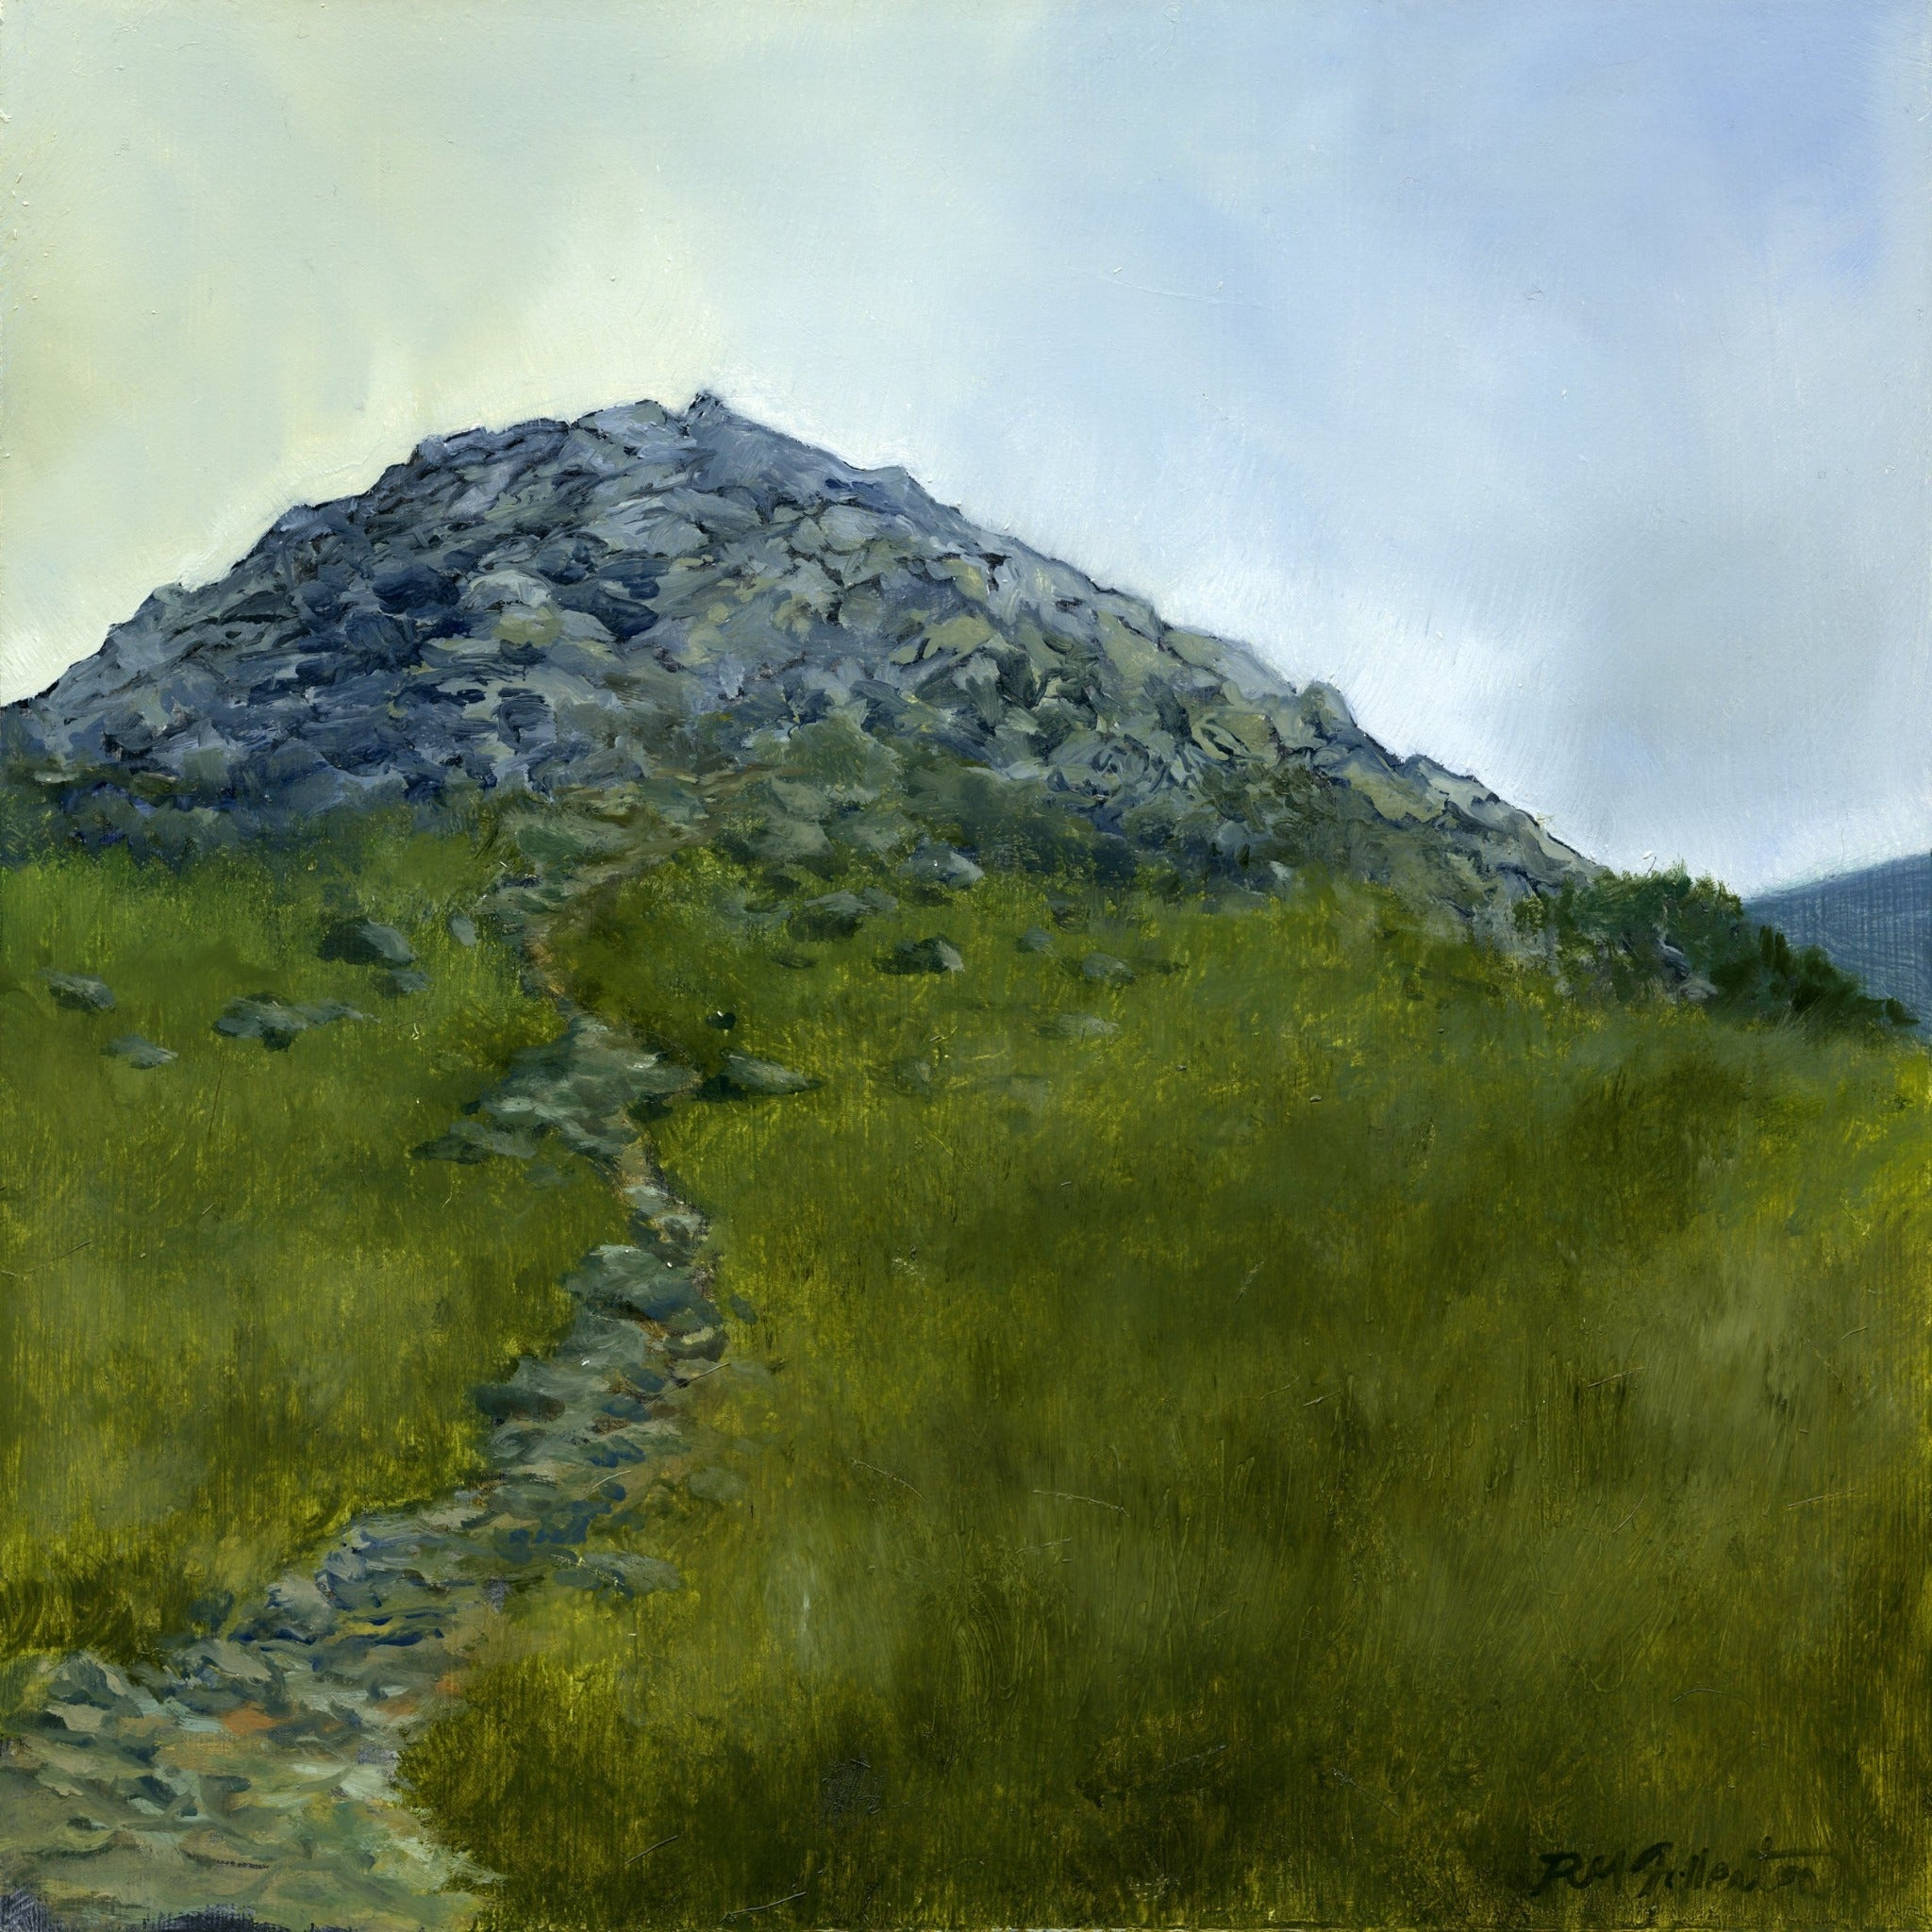 """False Summit"" is a 10 by 10 inch oil on panel landscape painting by Rebecca M Fullerton, depicting a rocky promontory surrounded by sedge and alpine plants along the Presidential Range of the White Mountain National Forest in New Hampshire."